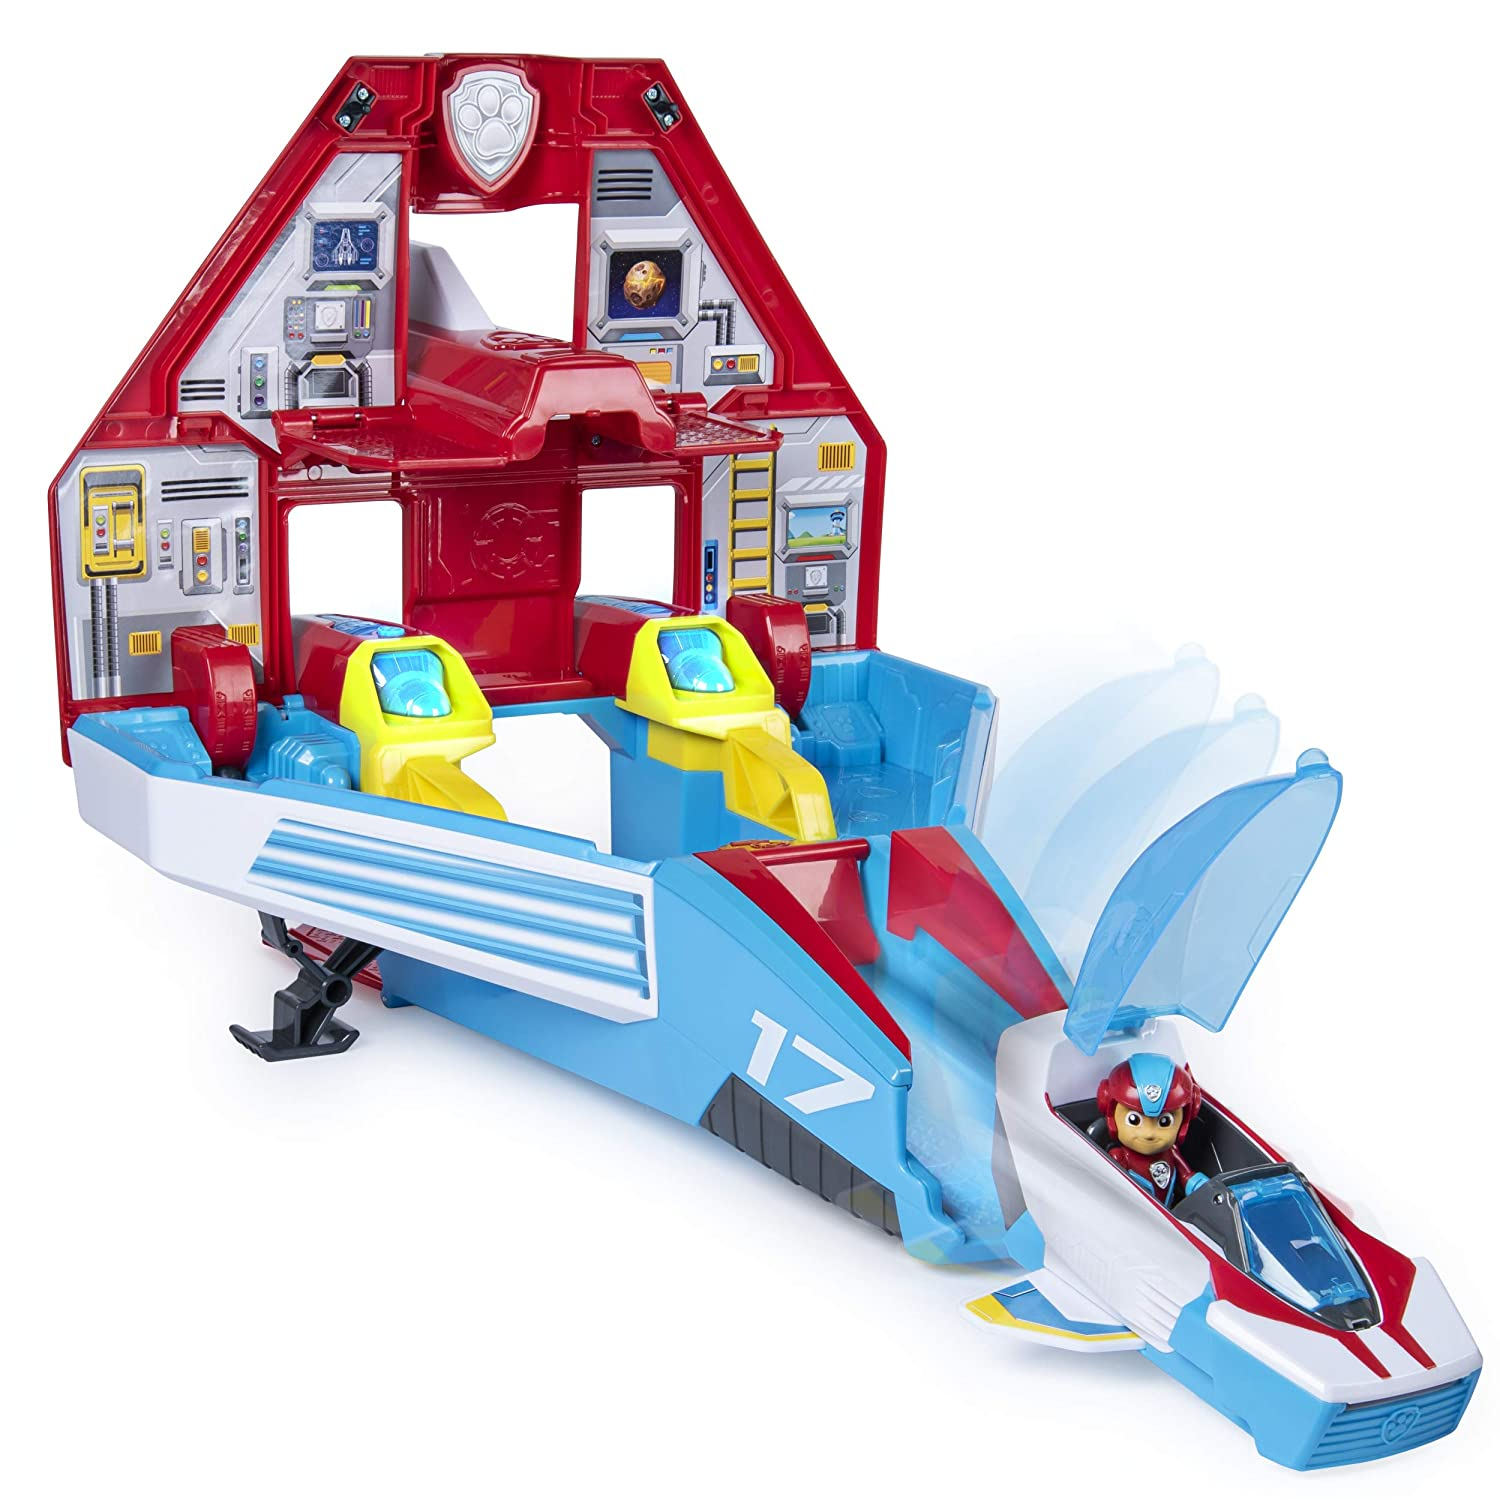 6053098 Jeu enfant La Pat Patrouille Paw Patrol Supersonic Jet Mighty Pups